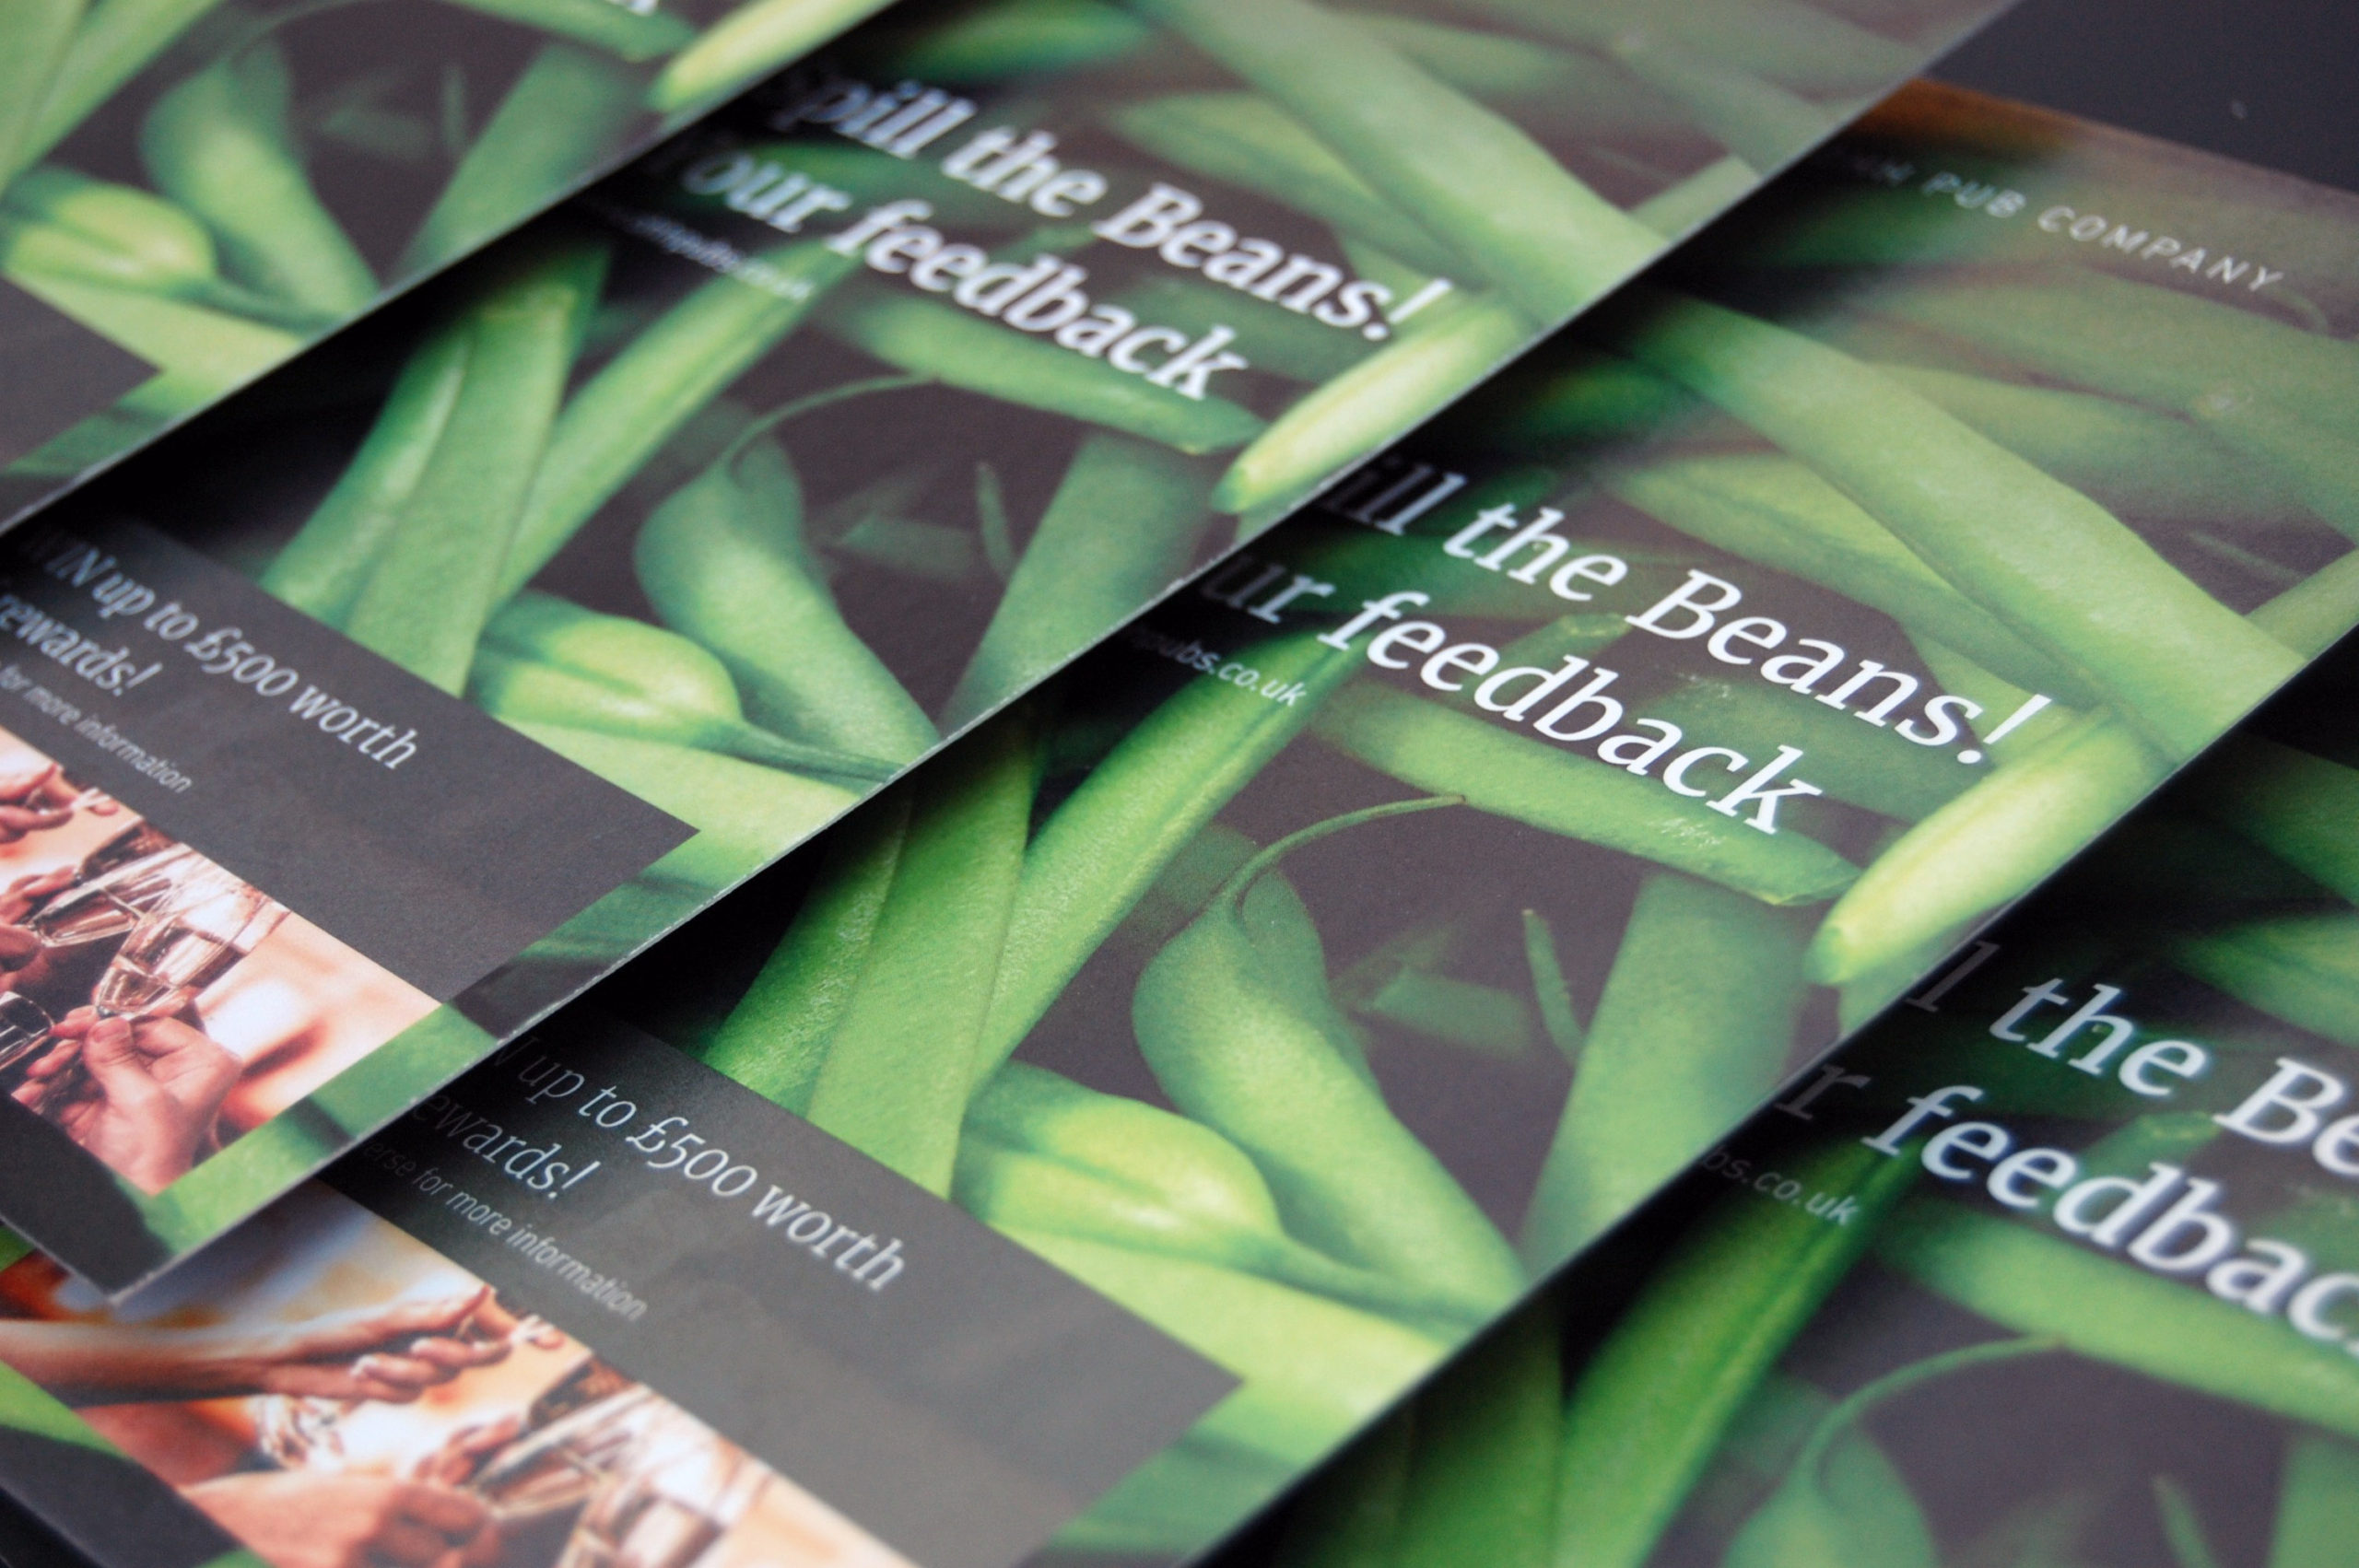 OHH Pub Co Feedback leaflet cover